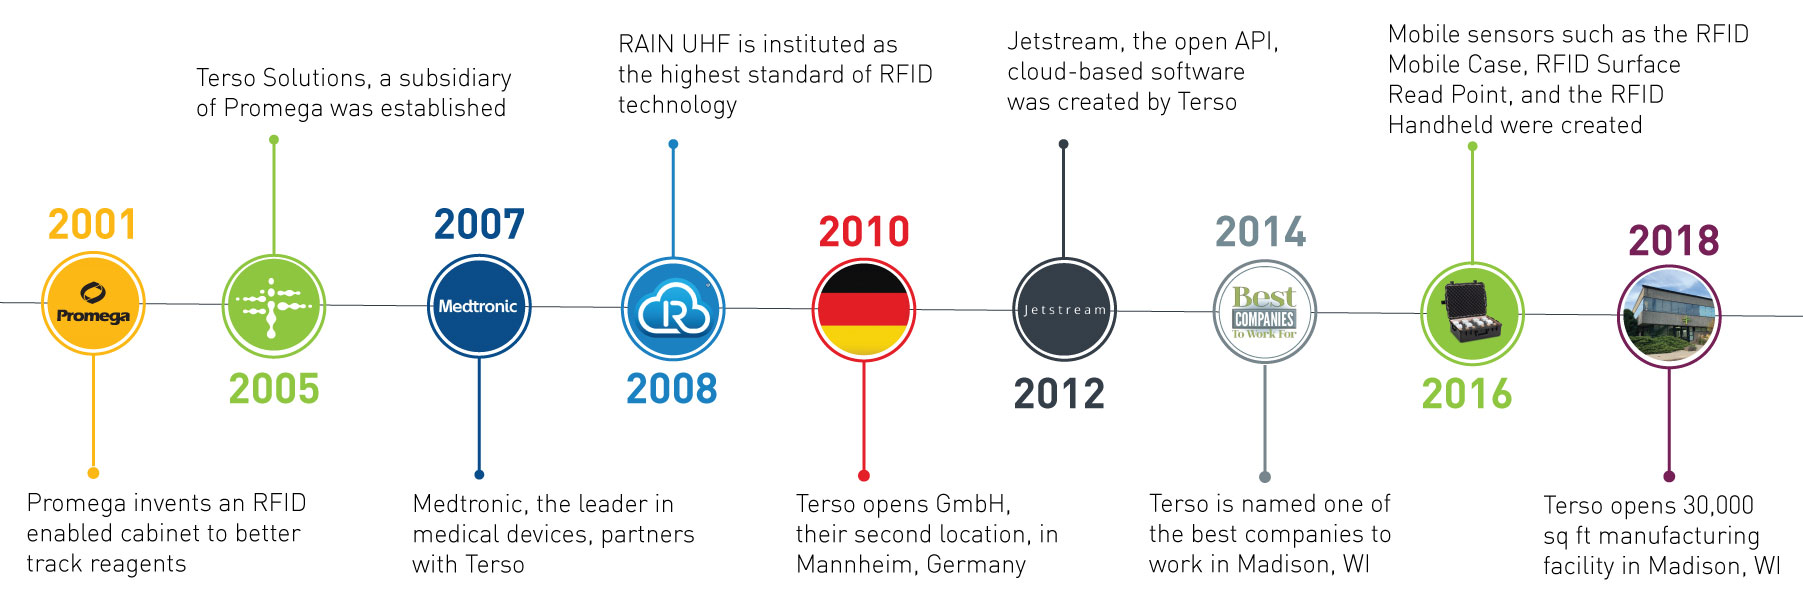 History of Terso Soluitons, leader in RFID Solutions for tracking inventory in healthcare and life sciences